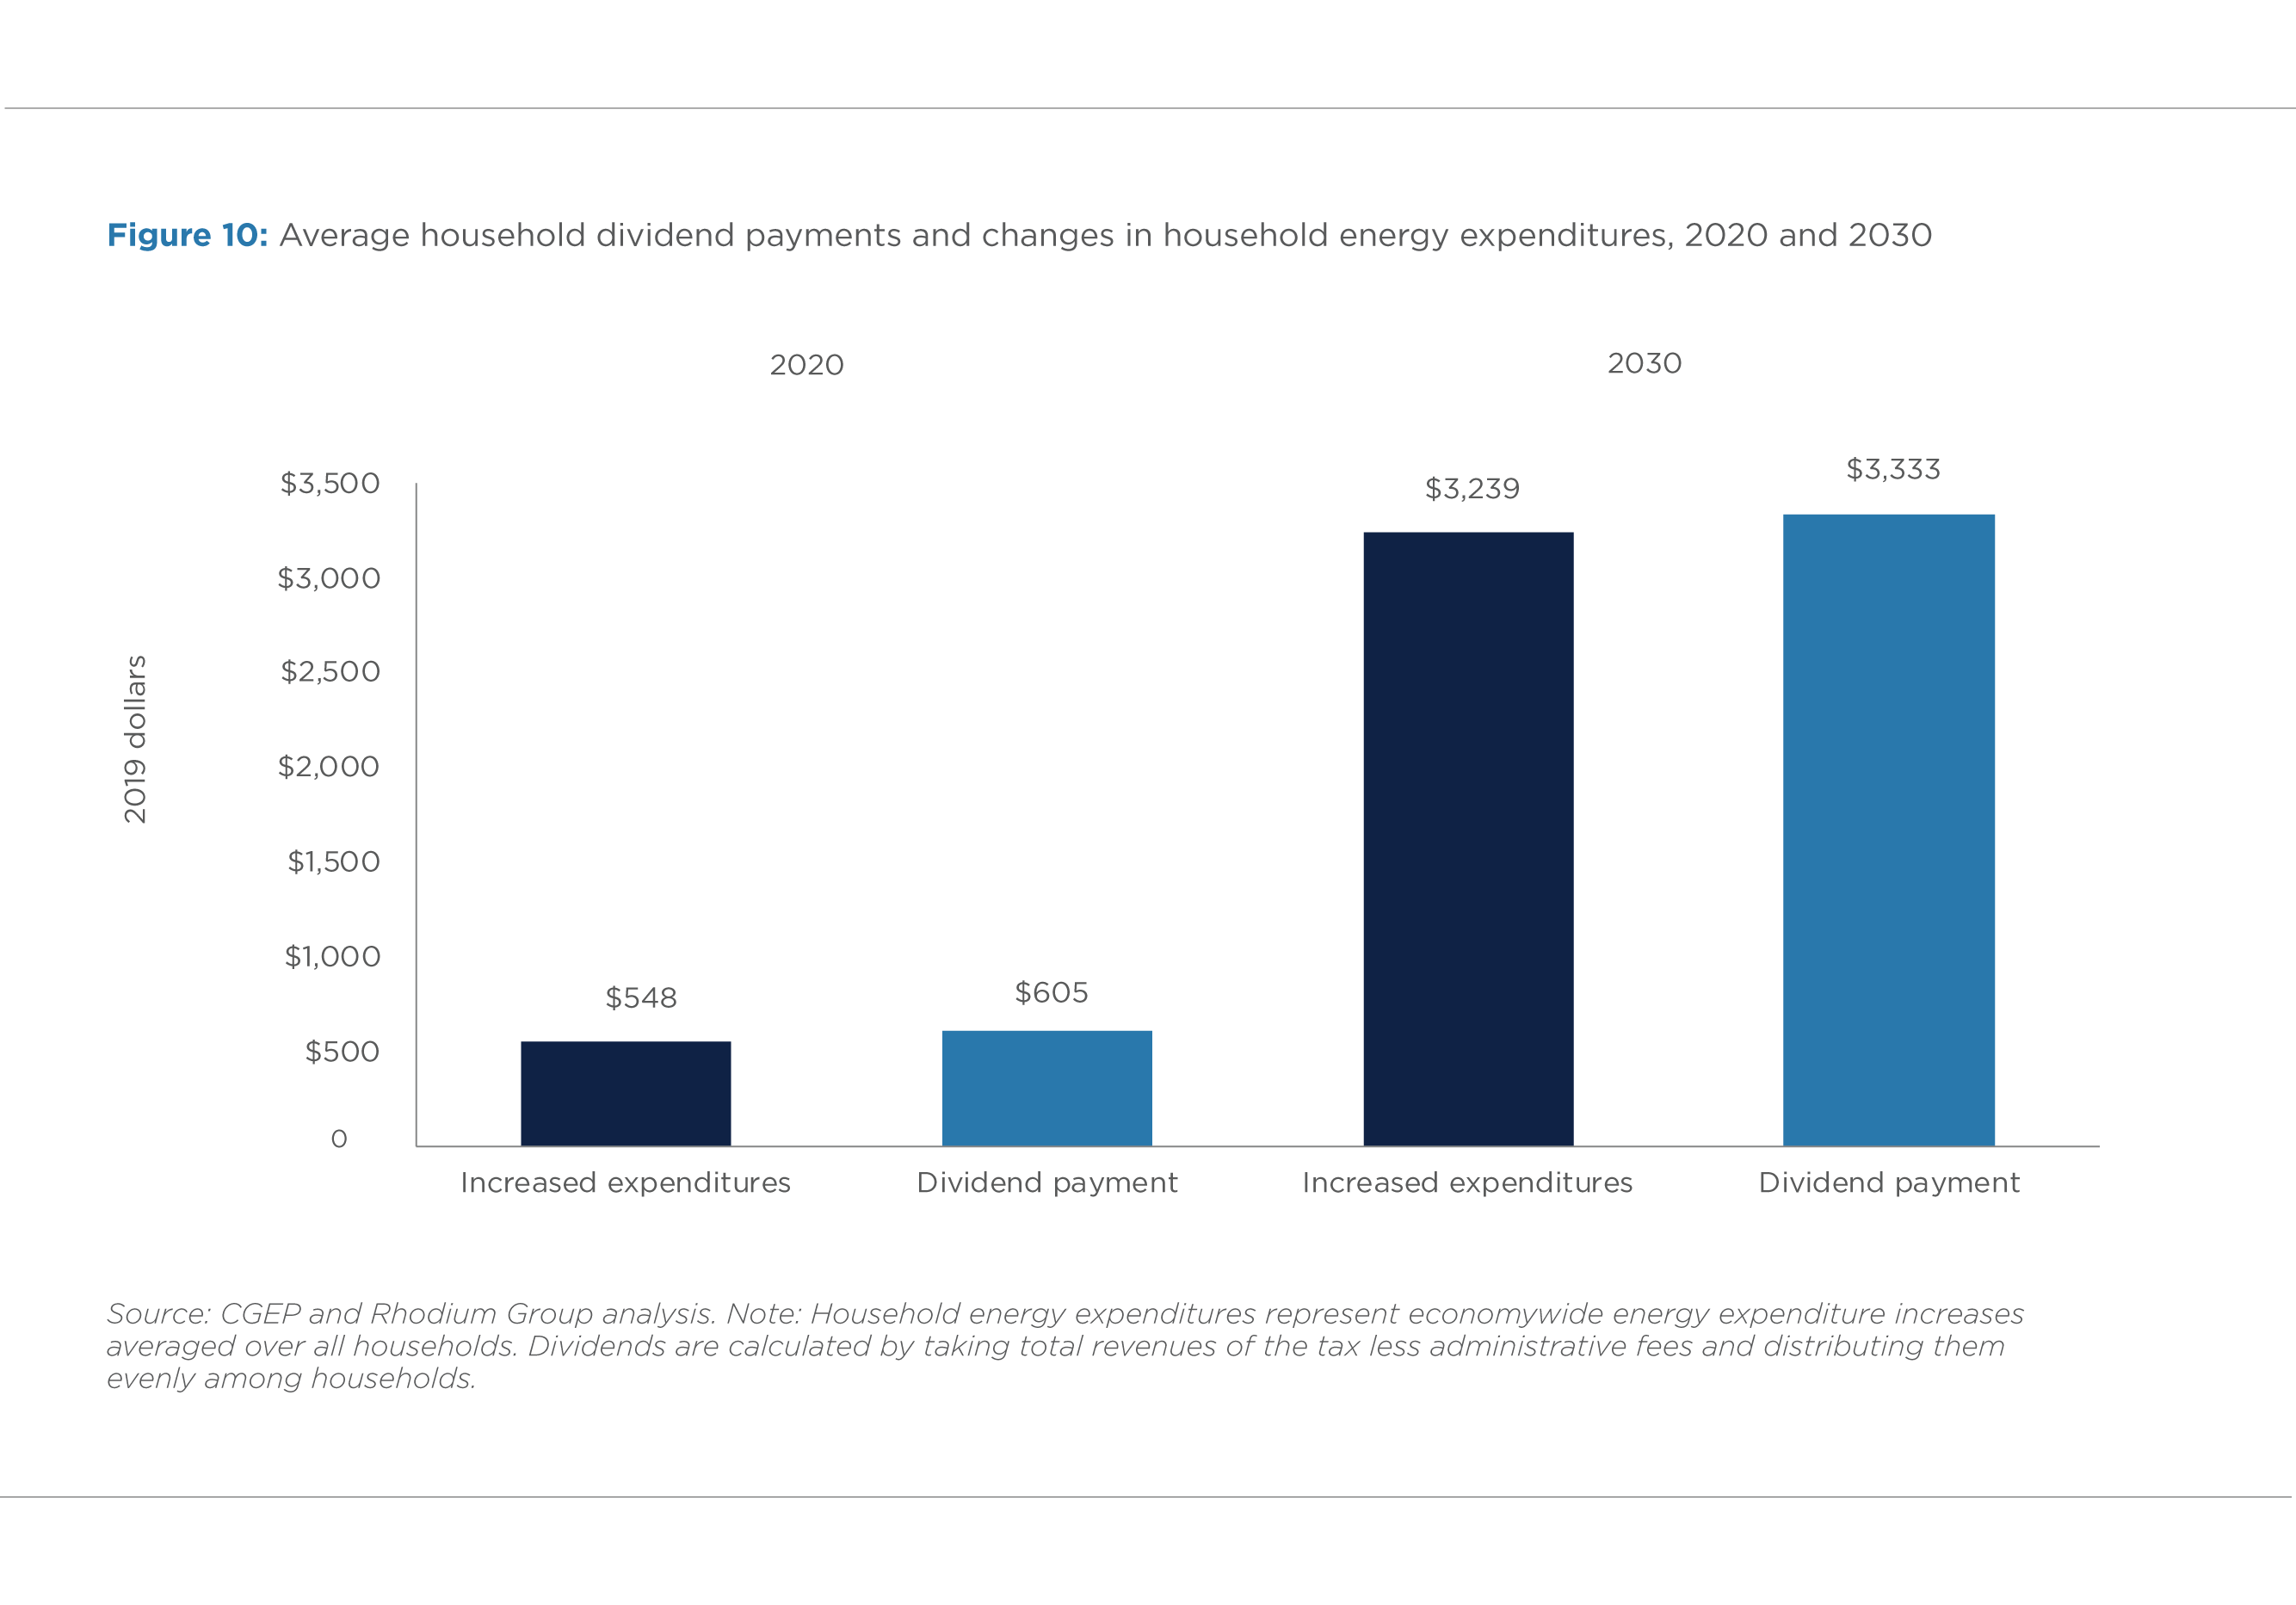 FIGURE 10. AVERAGE HOUSEHOLD DIVIDEND PAYMENTS AND CHANGES IN HOUSEHOLD ENERGY EXPENDITURES, 2020 AND 2030